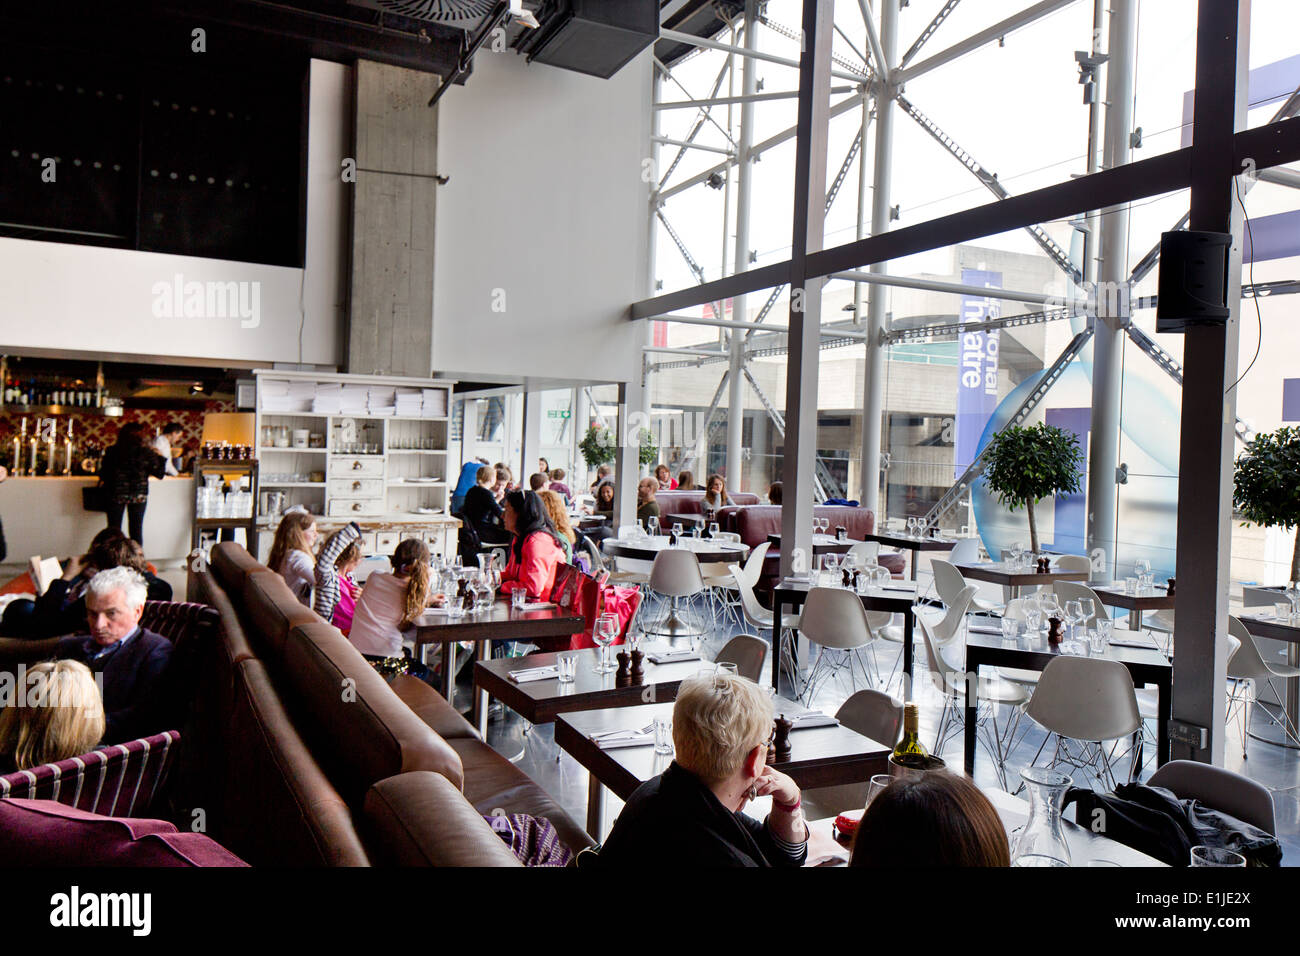 The restaurant in the British Film Institute, South Bank, London. - Stock Image